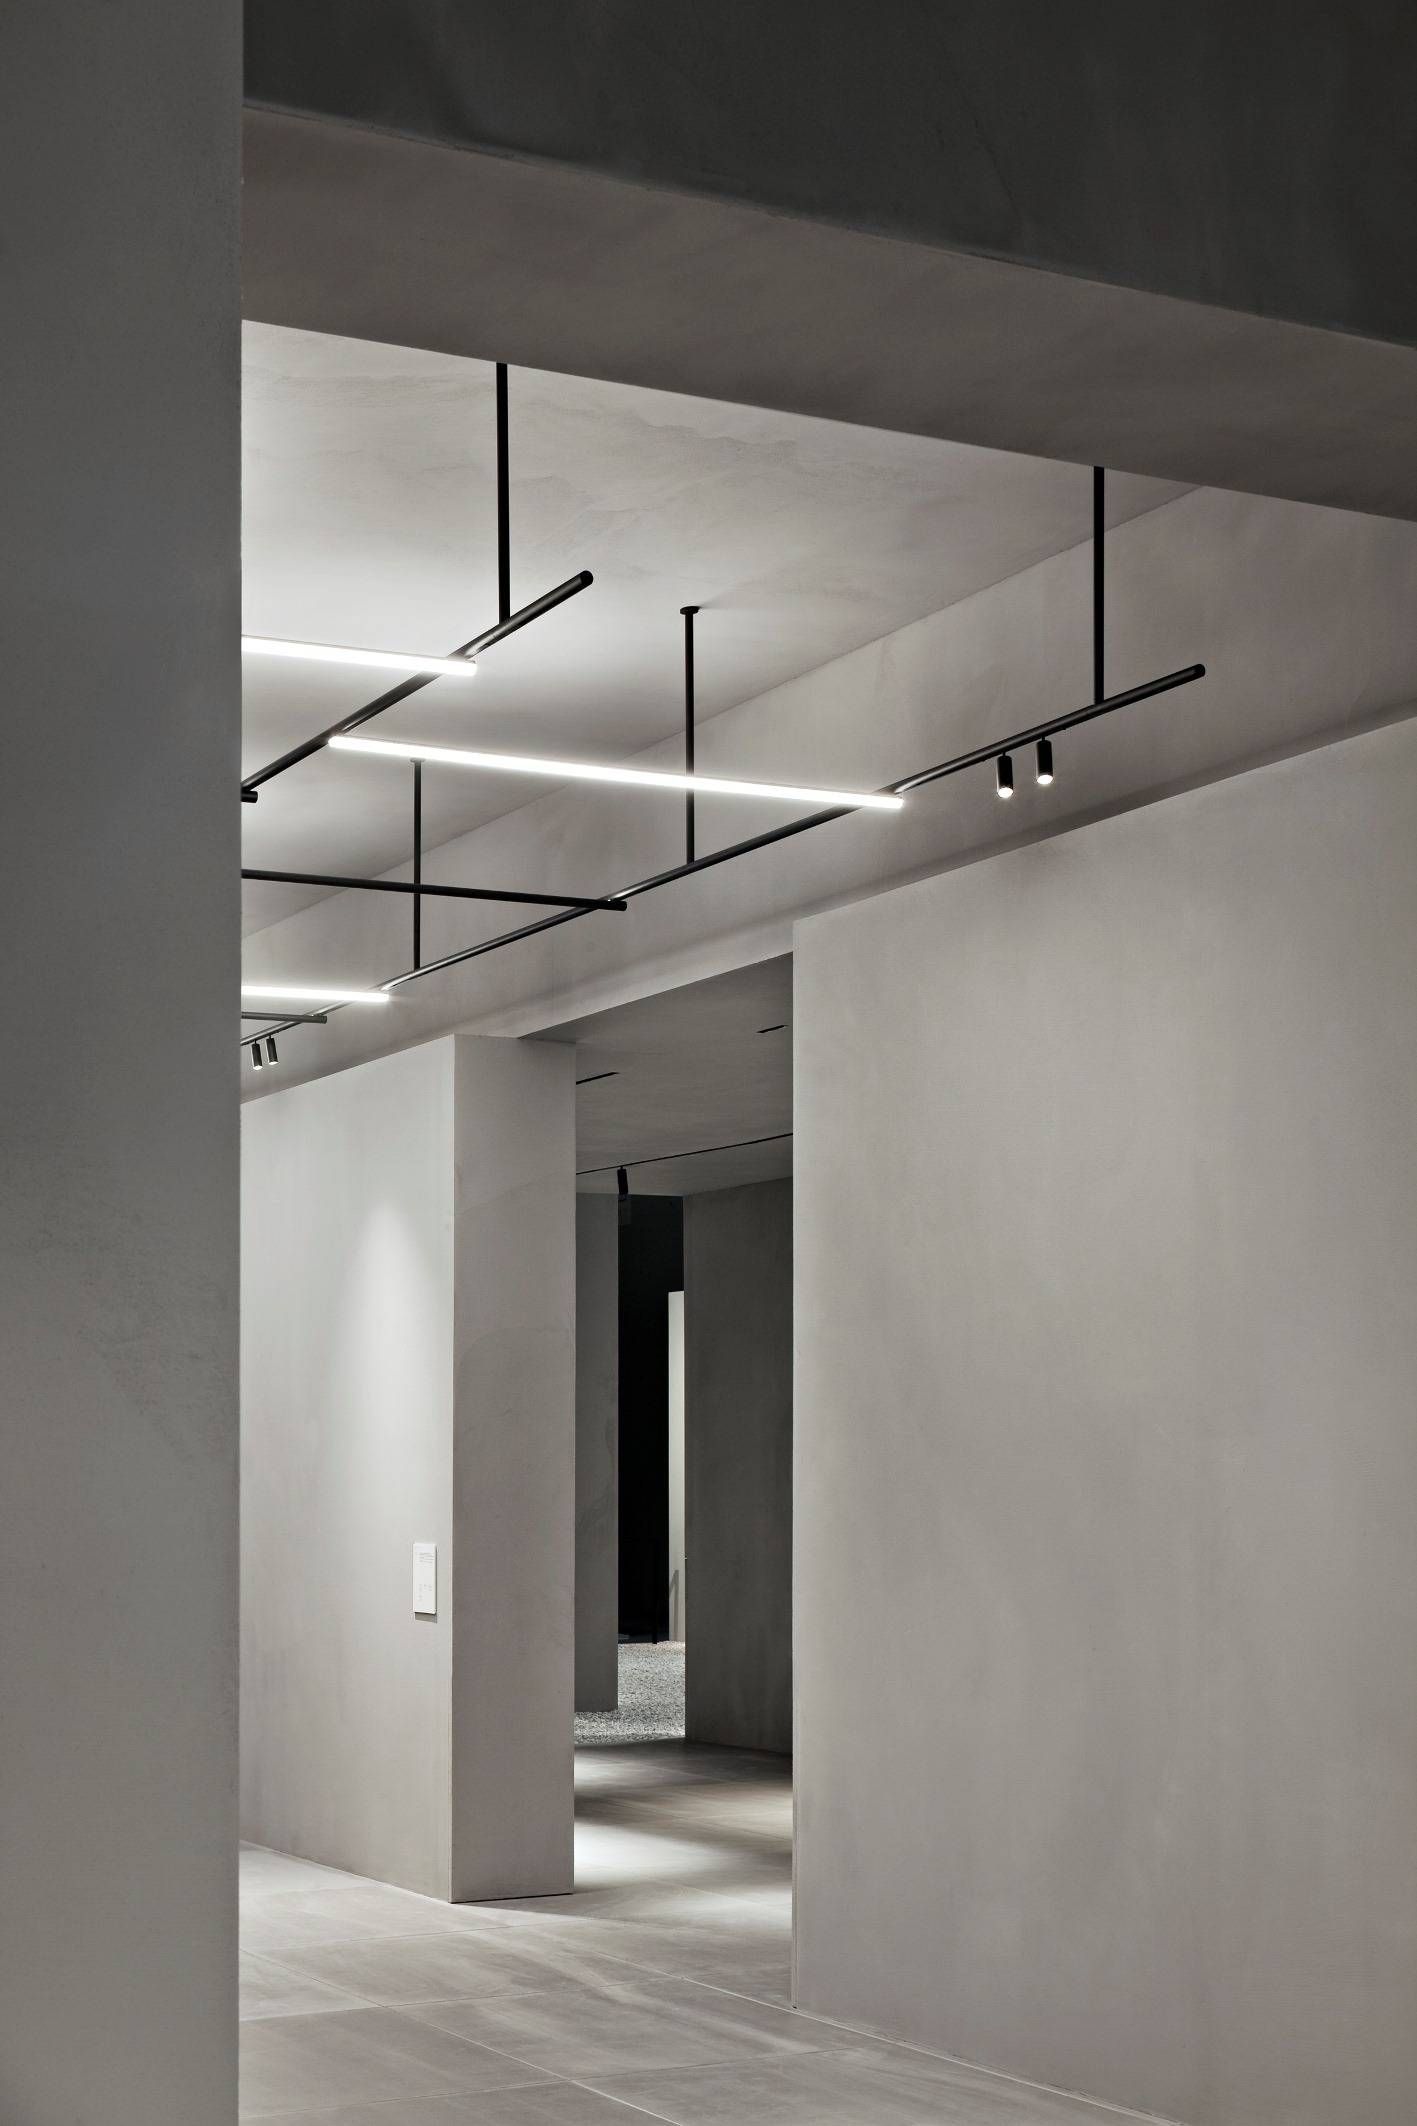 Infra-Structure - Projects - Vincent Van Duysen | Lights | Pinterest ...